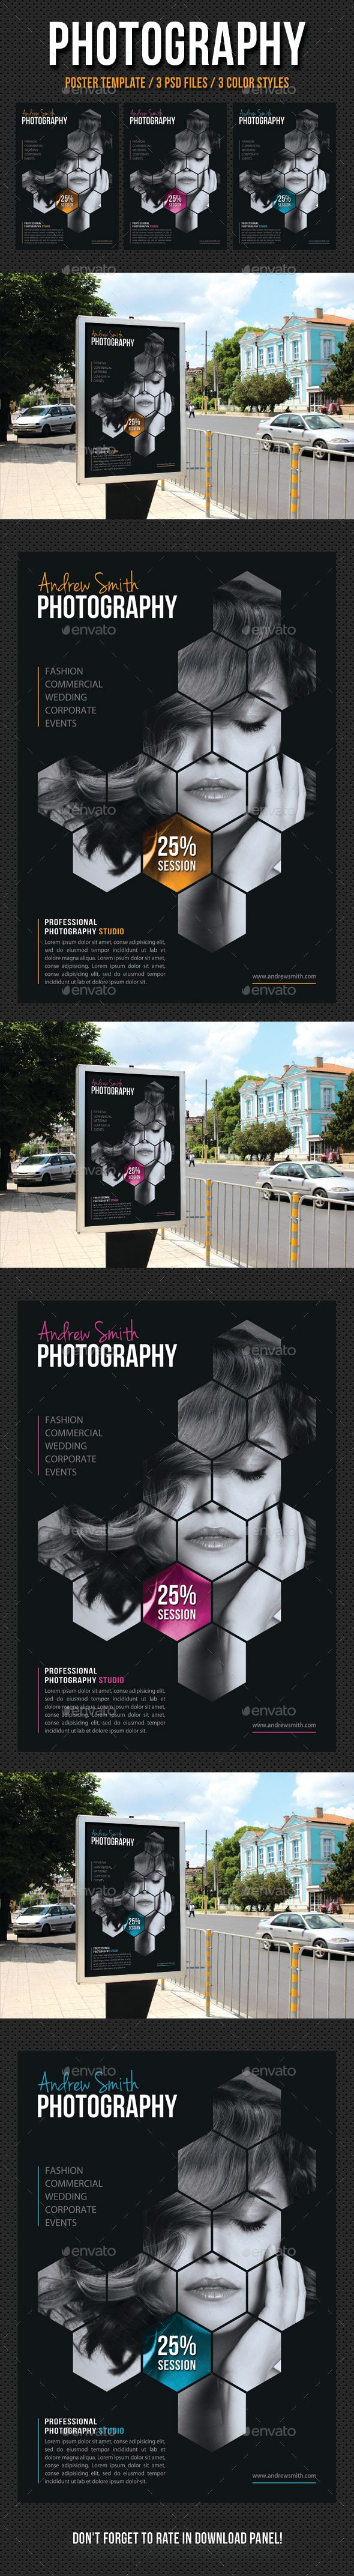 Photography Poster Template PSD. Download here: http://graphicriver.net/item/photography-poster-template-v04/13409992?ref=ksioks